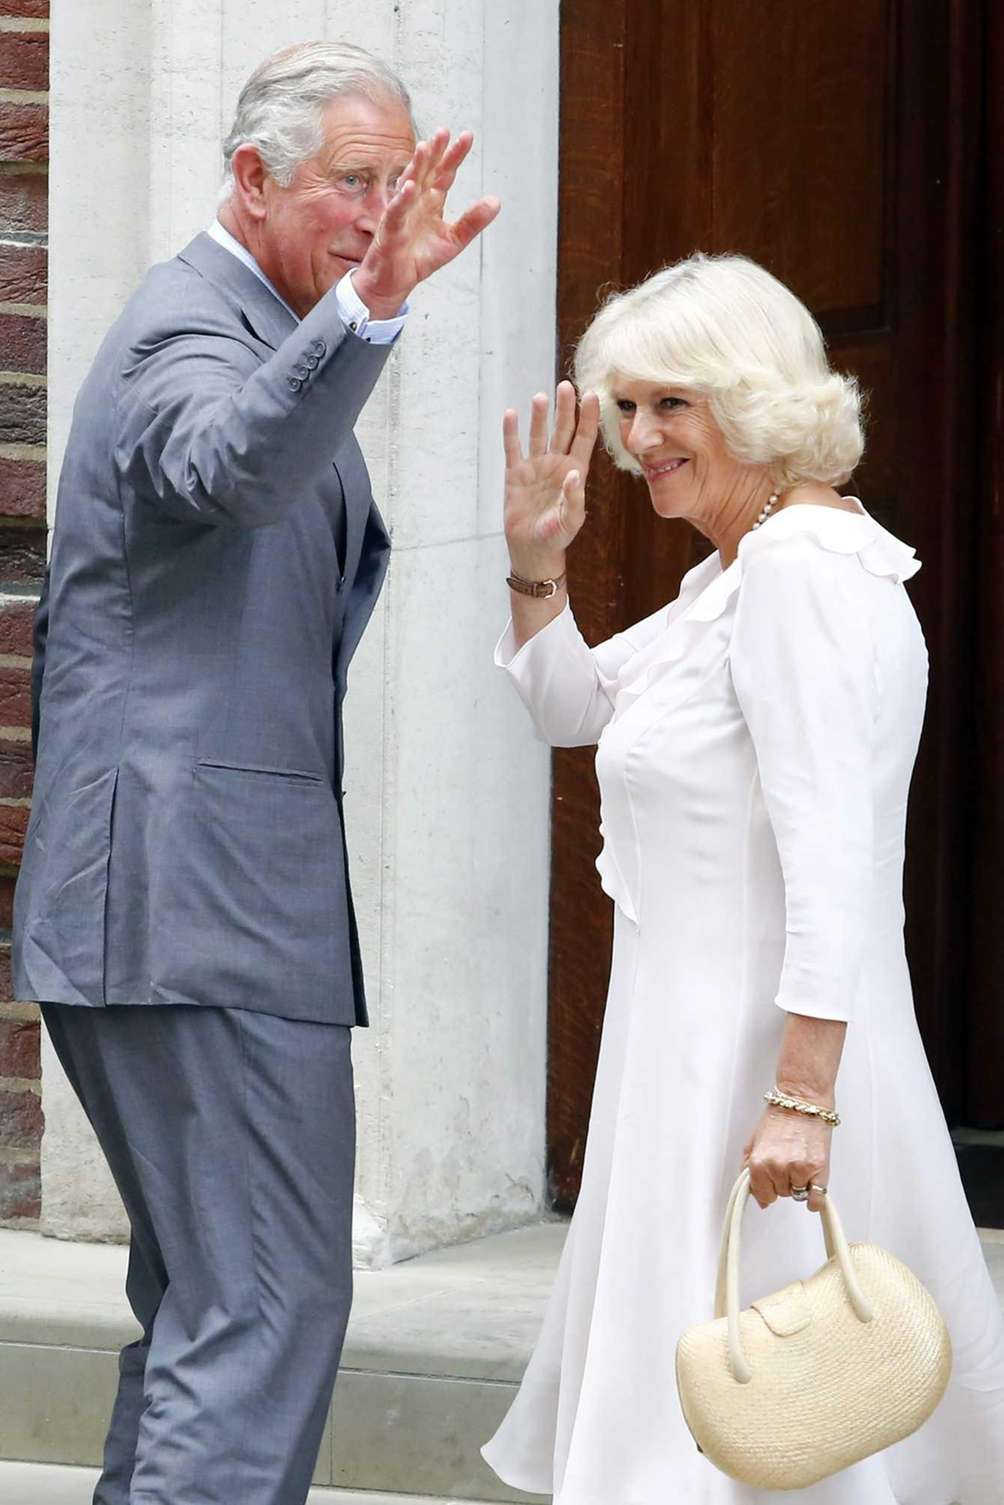 Britain's Prince Charles and his wife Camilla, duchess